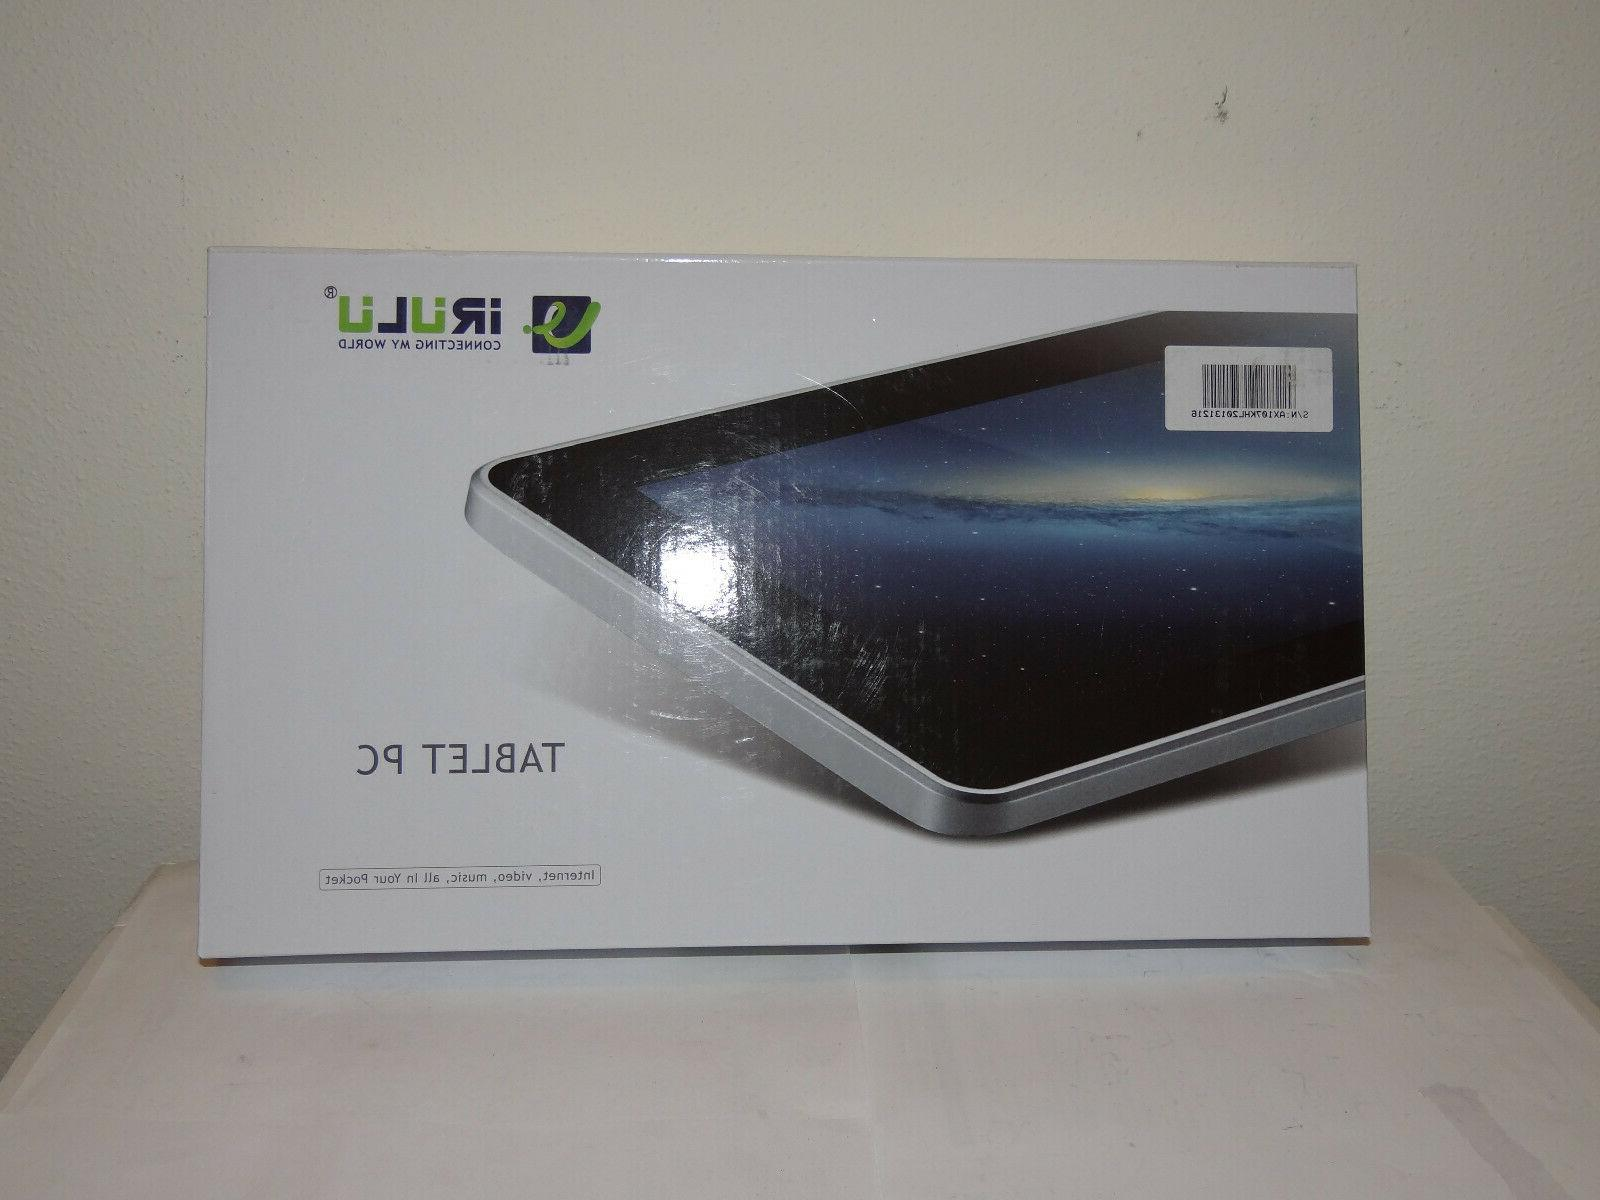 ax107 tablet 1024x600 hd 8gb wi fi